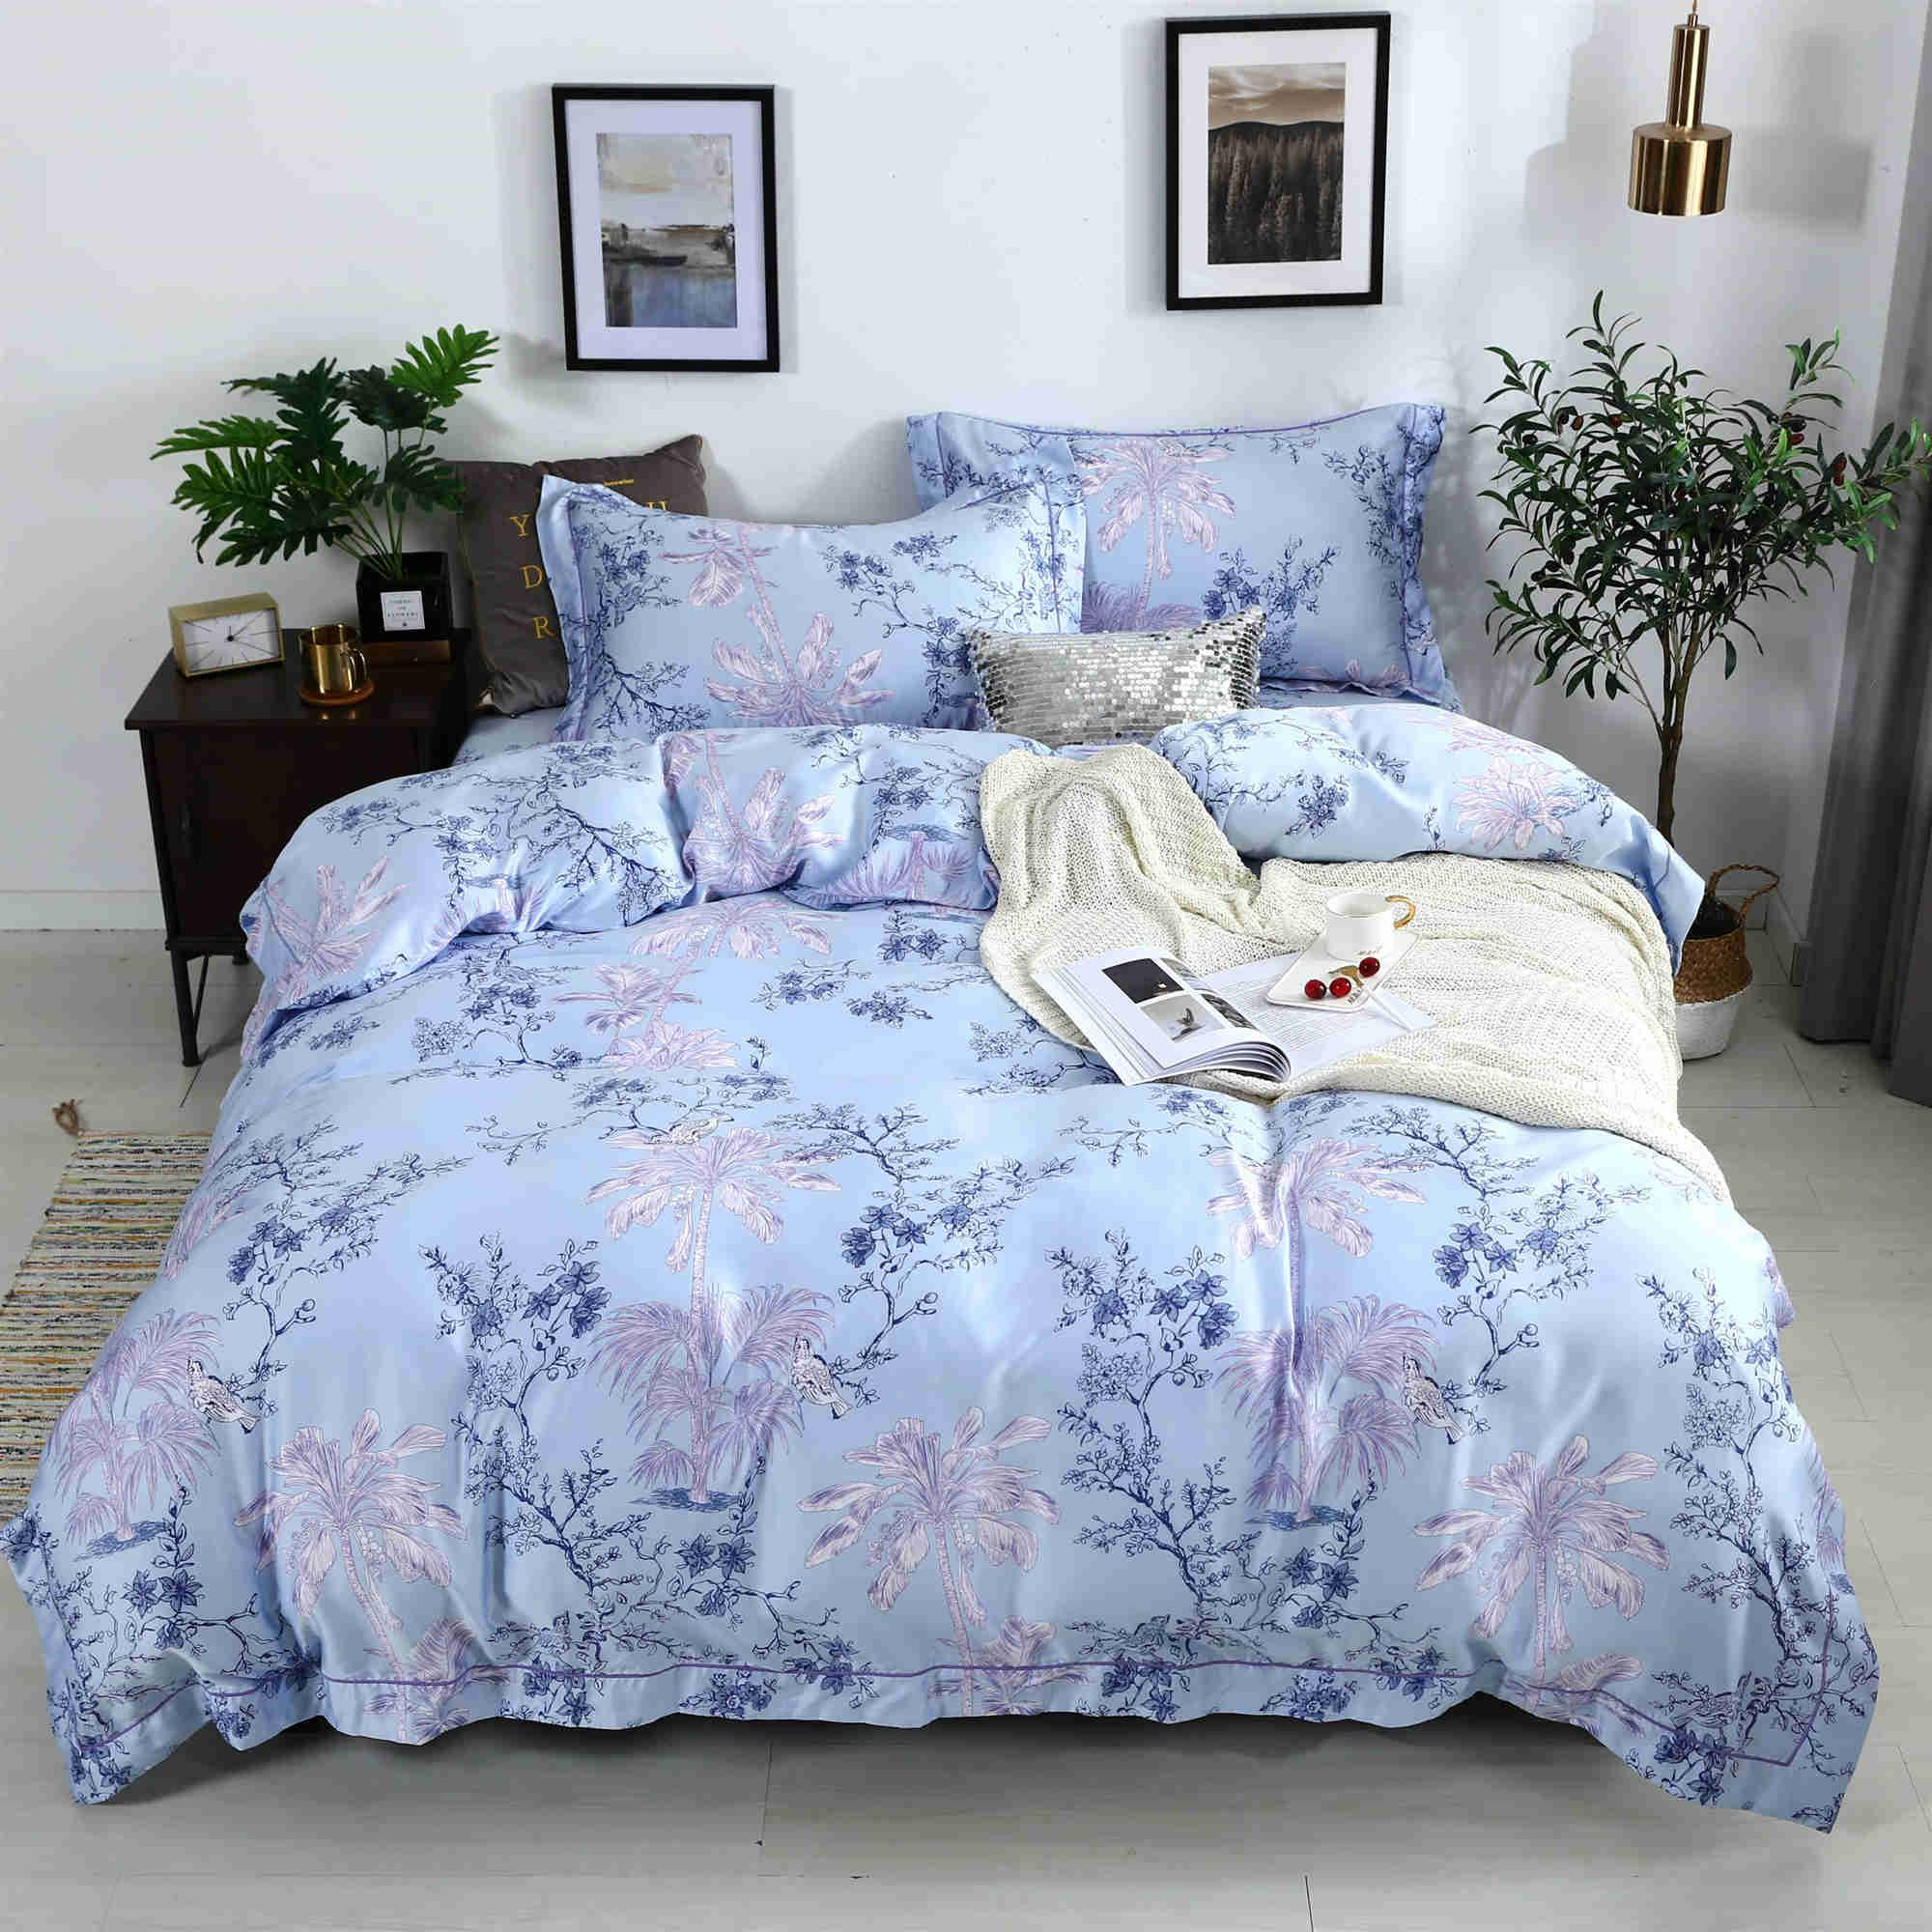 Newest Design Tencel Luxury Comforter Set